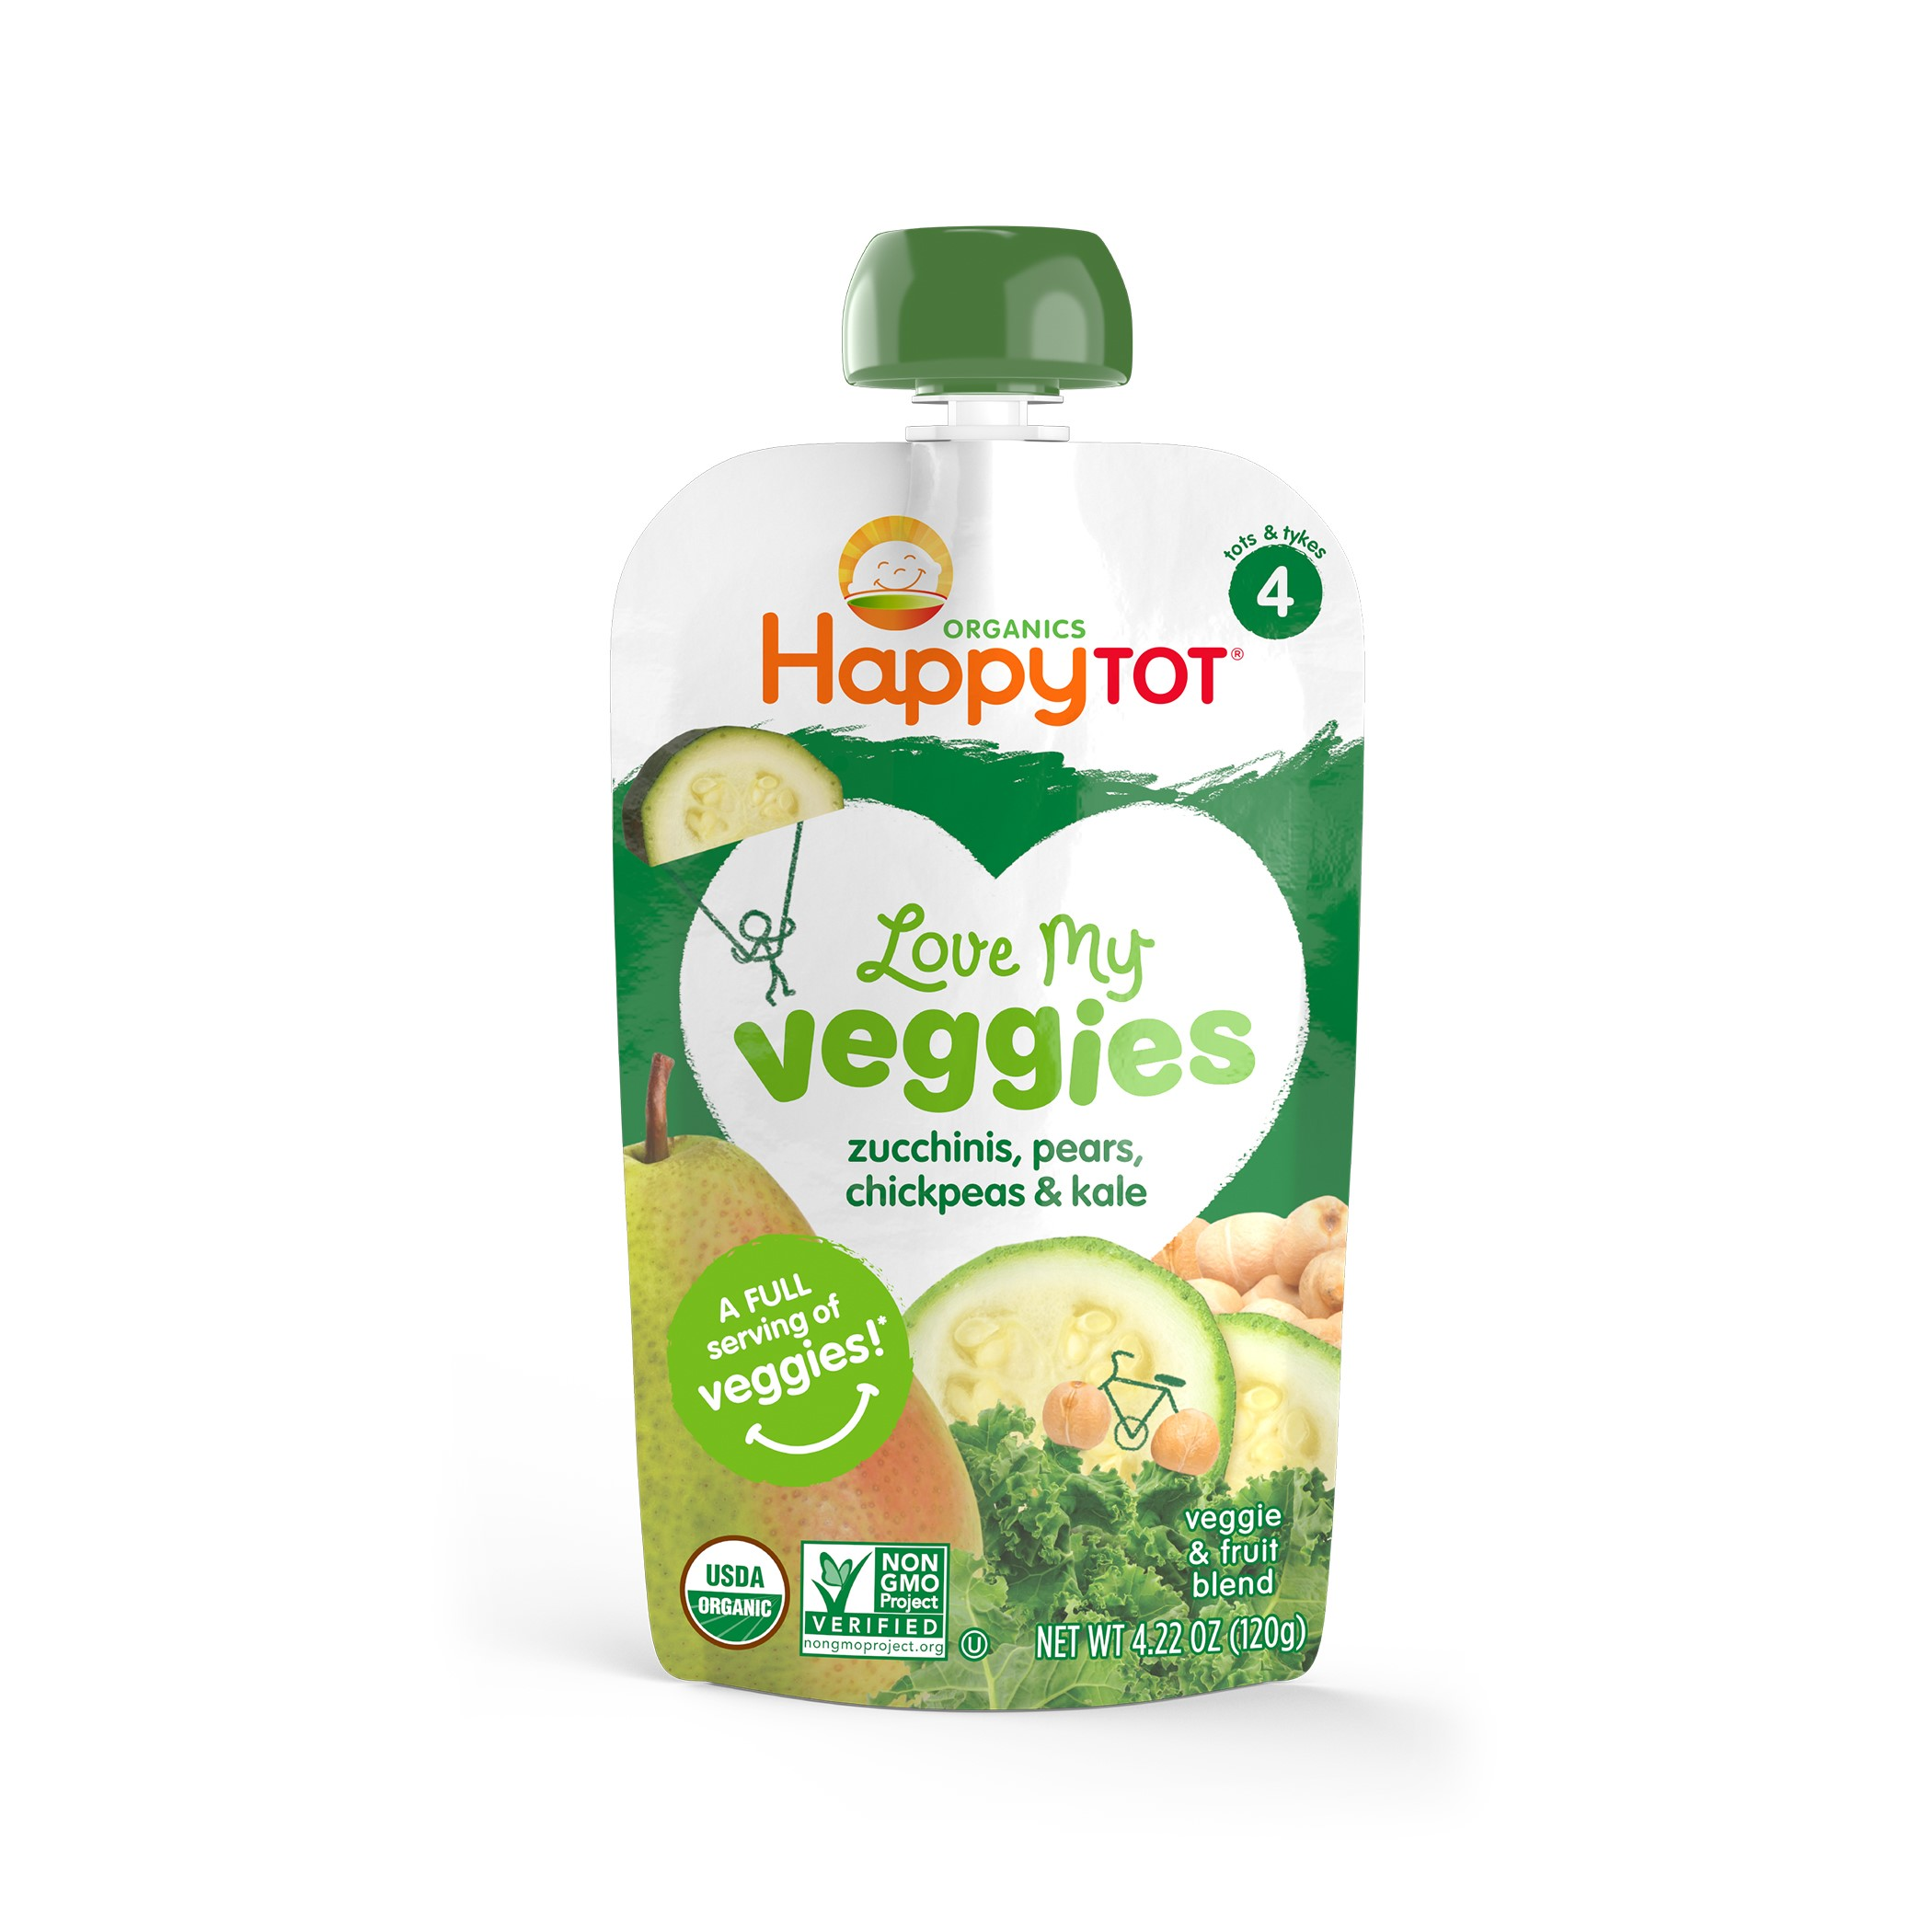 Happy Tot Love My Veggies, Stage 4, Organic Toddler Food, Zucchinis, Pears, Chickpeas & Kale, 4.22 Oz